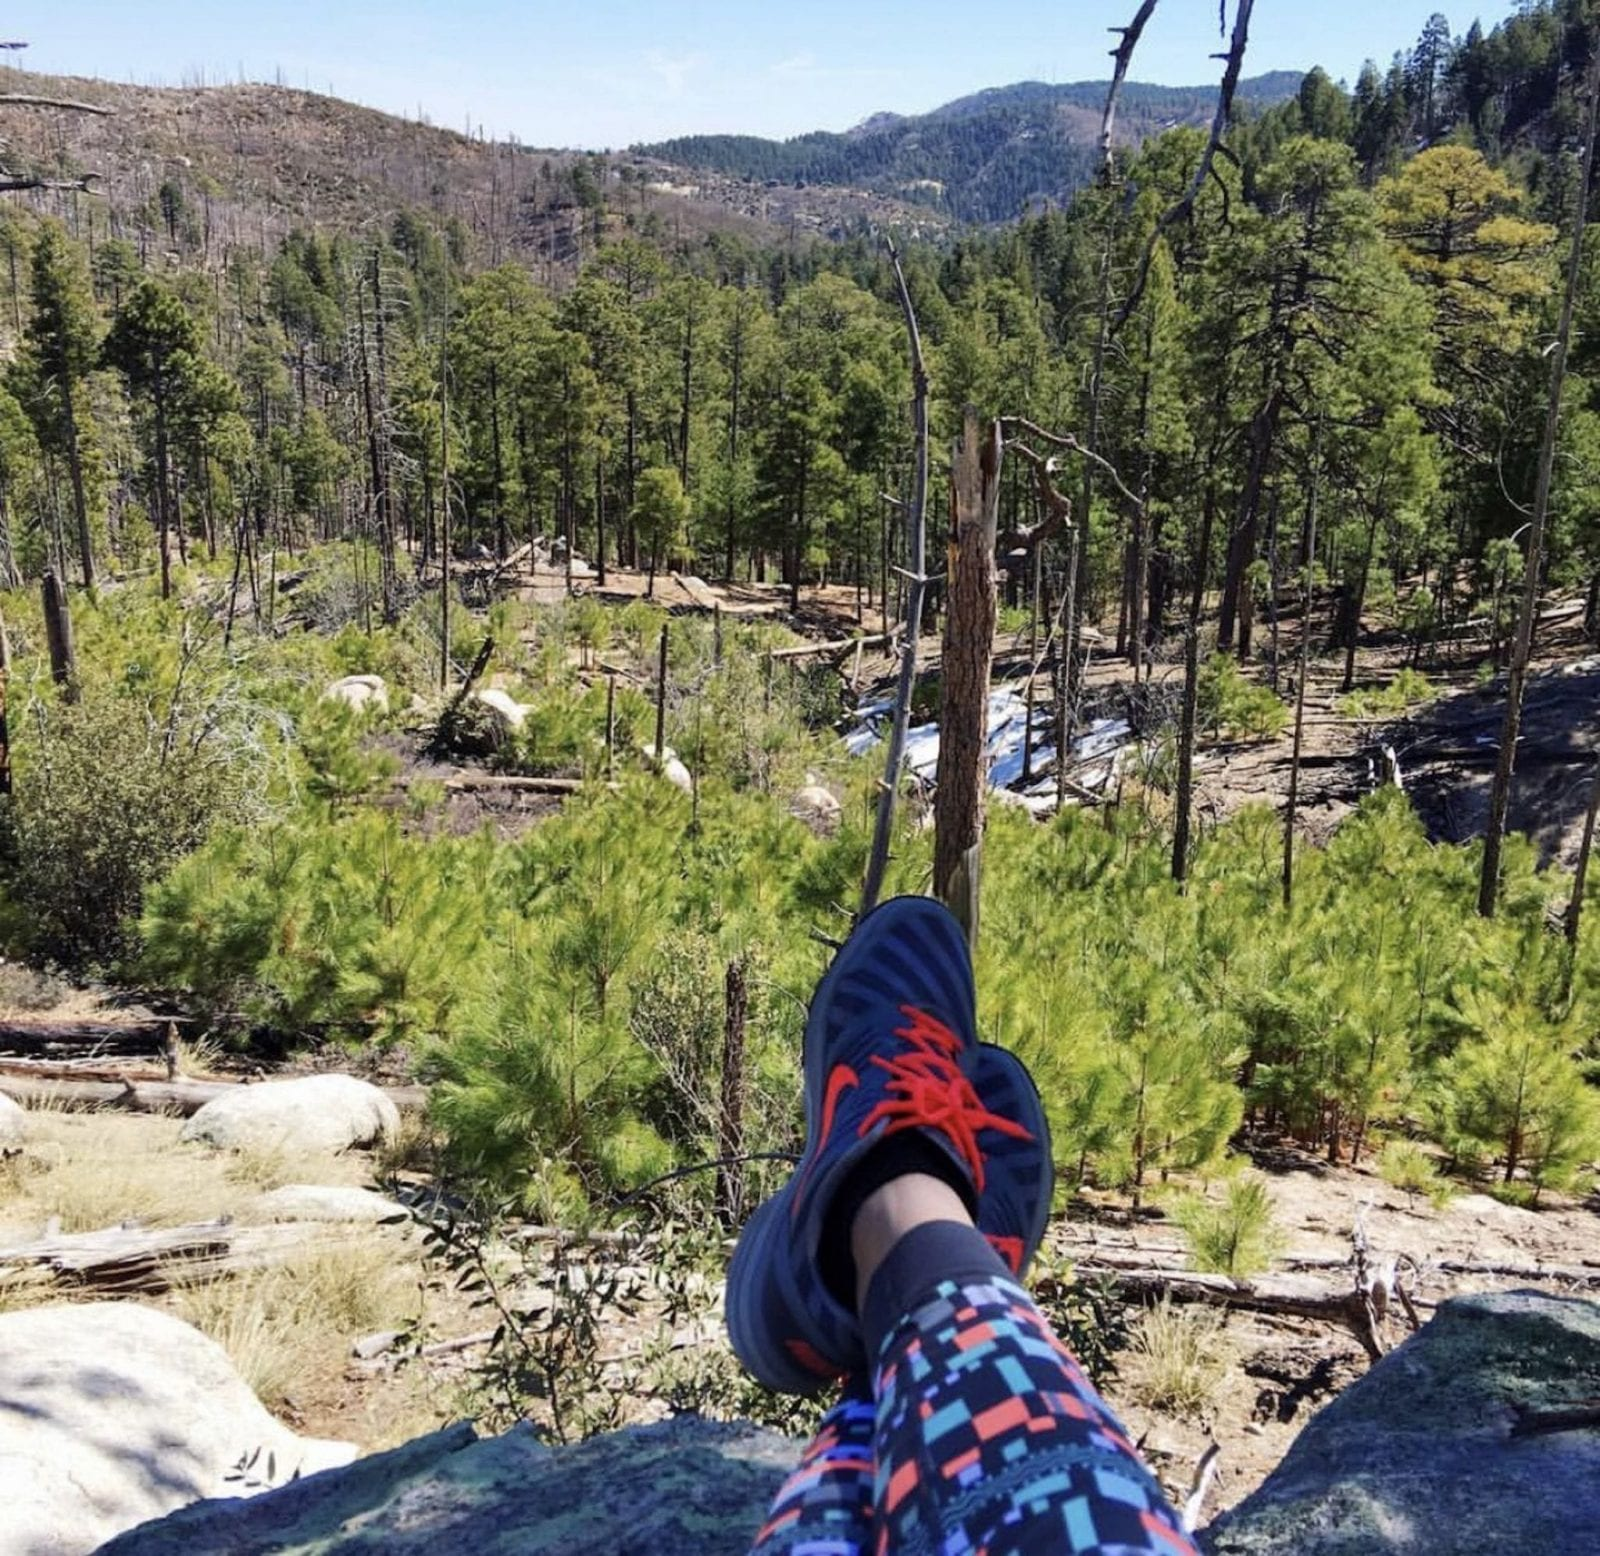 This is a close up of my Nike running shoes with a view of Mount Lemmon, after hiking.